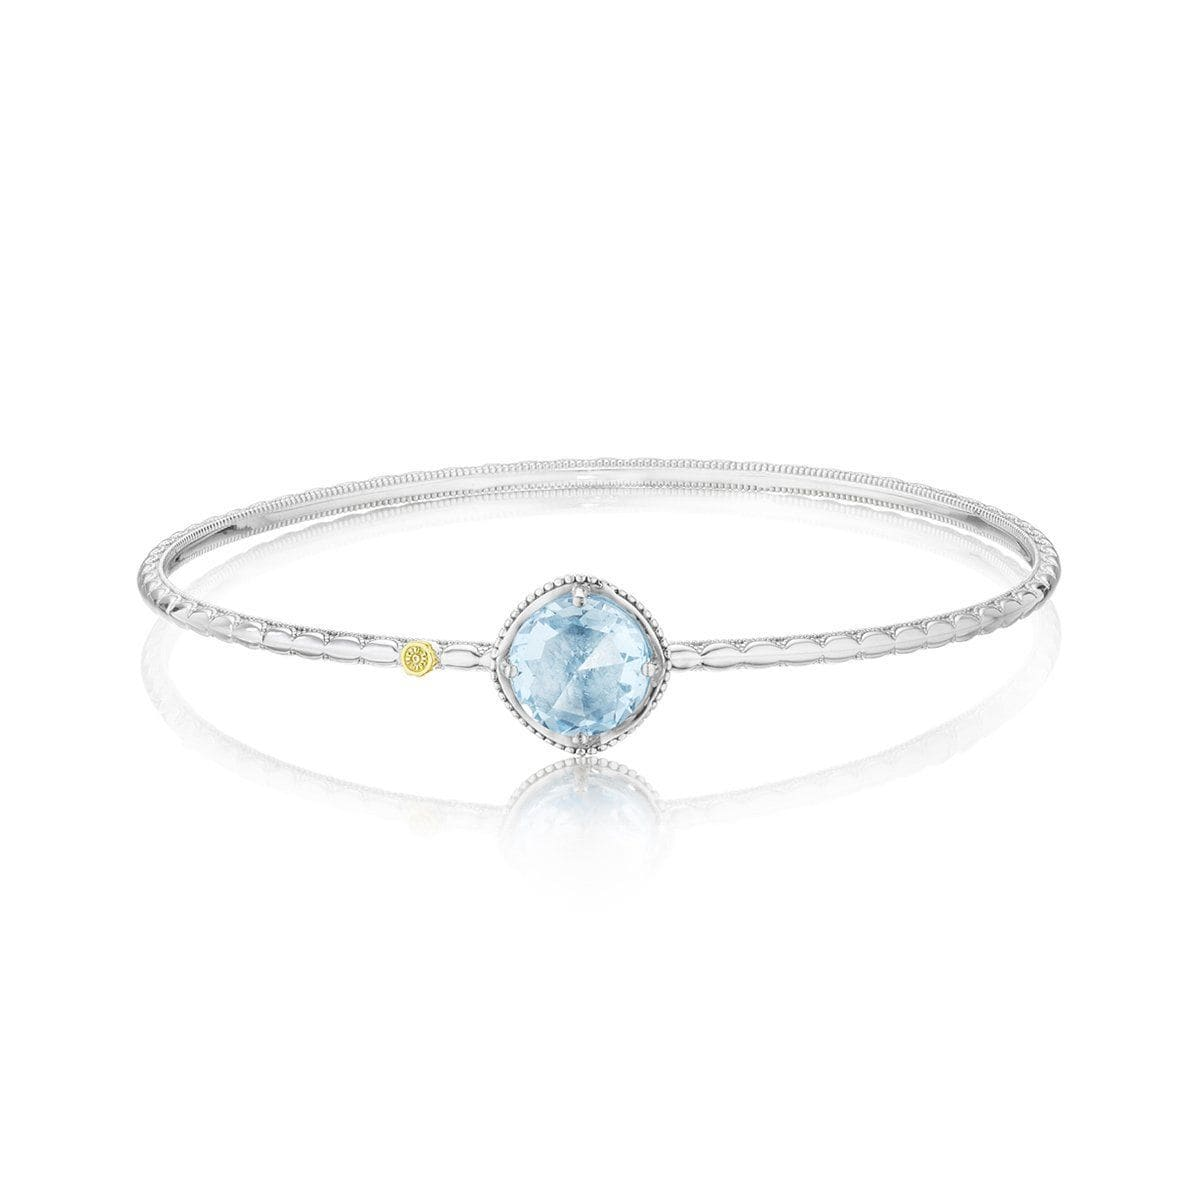 Silver 10mm Sky Blue Topaz Bangle - SB12302-Tacori-Renee Taylor Gallery